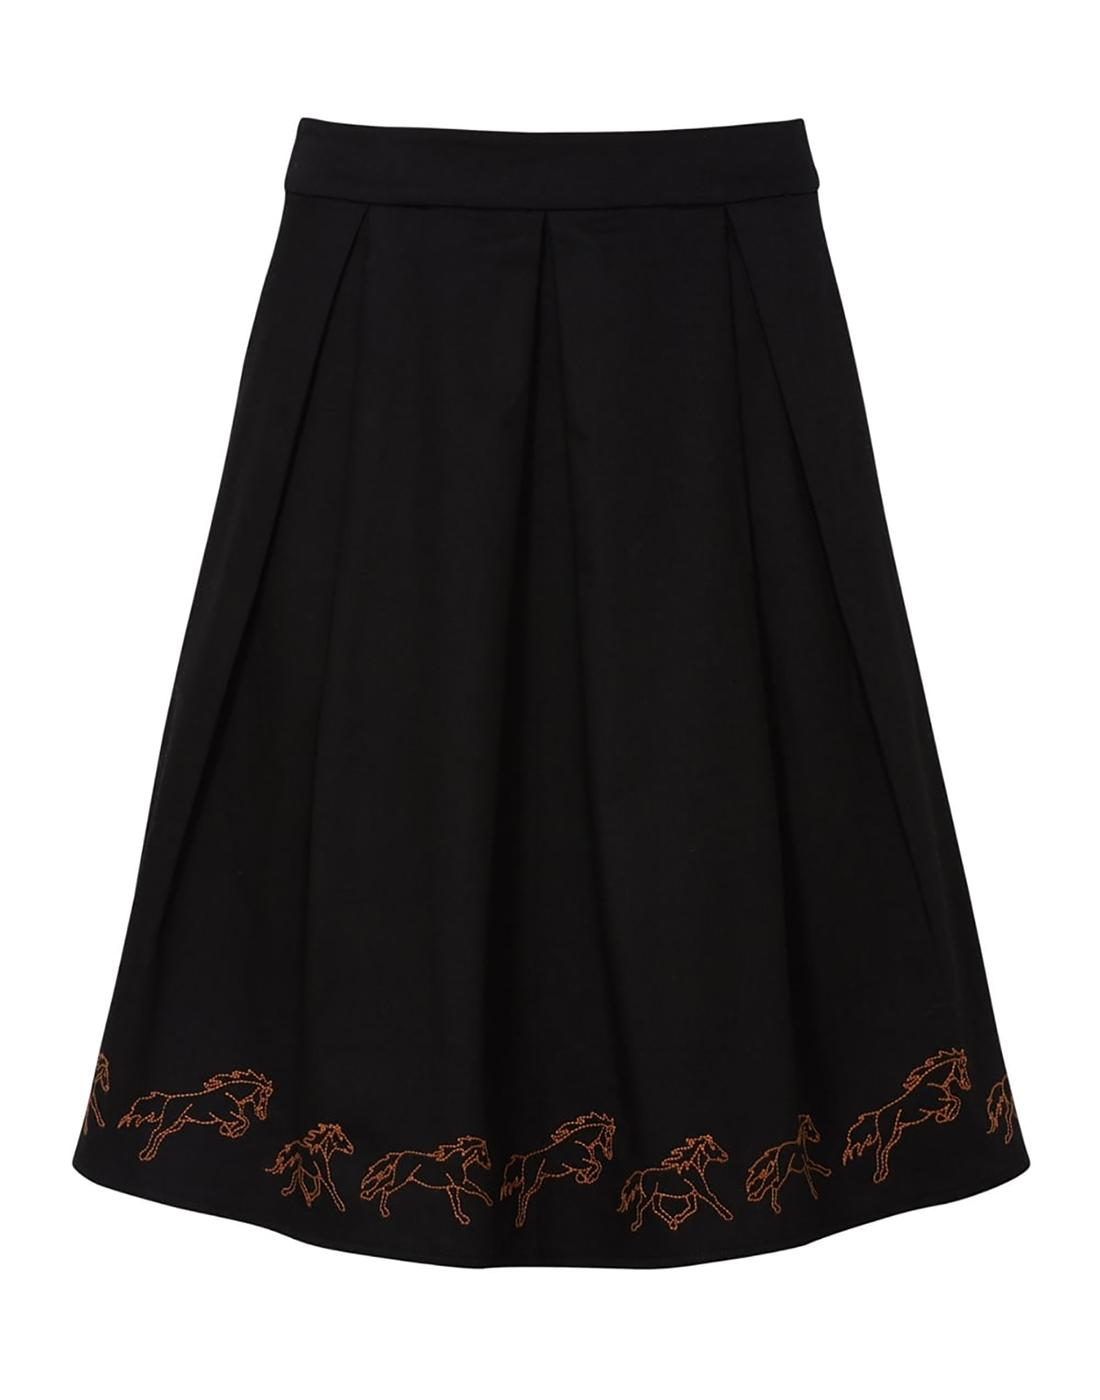 Fiona SUGARHILL BOUTIQUE Retro Horses Midi Skirt